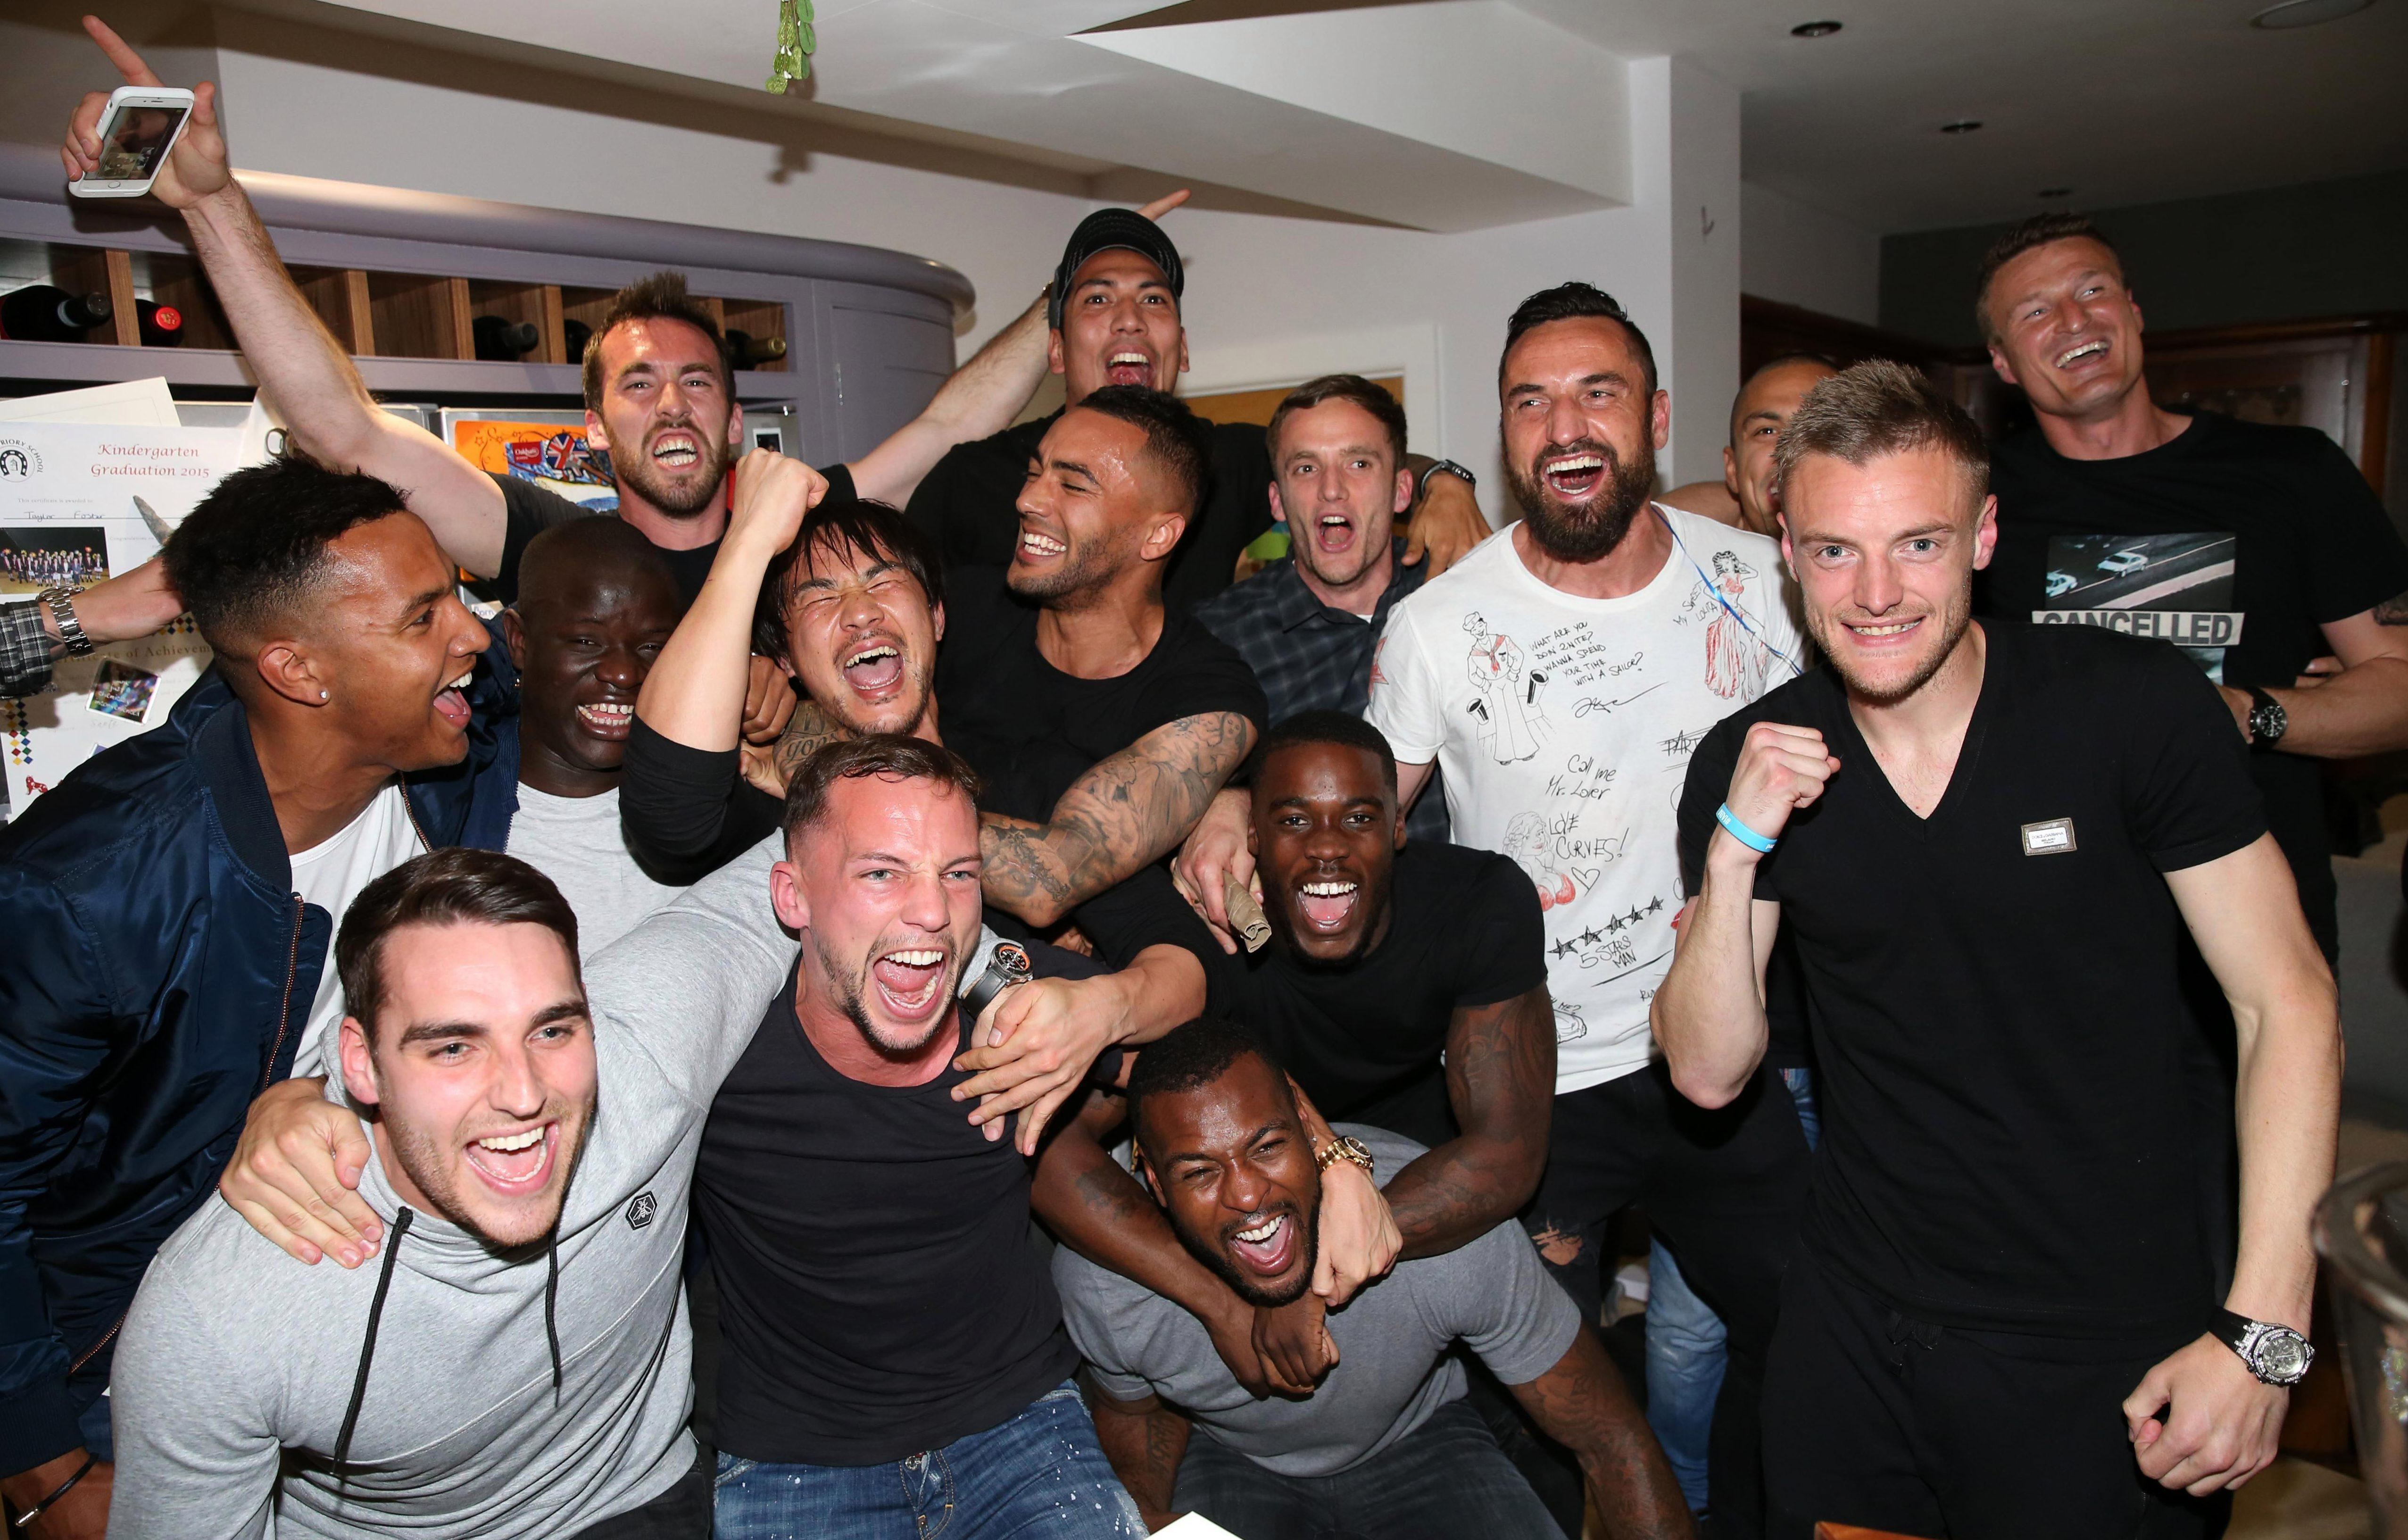 A true Vardy party